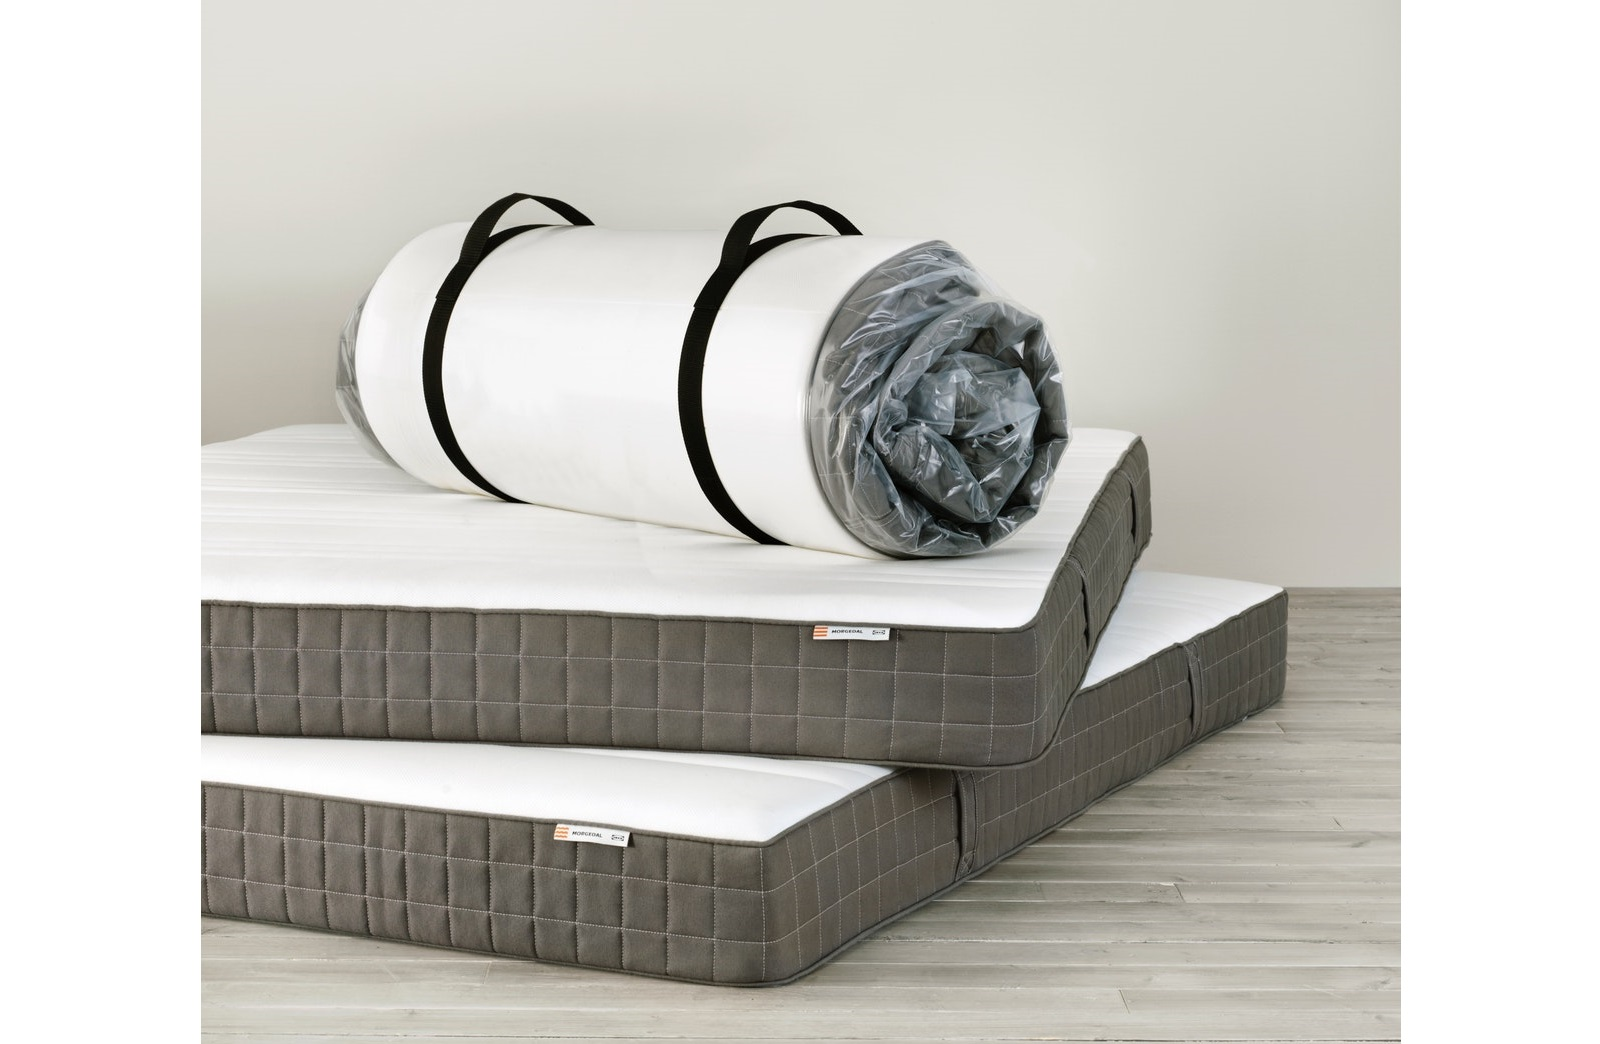 ikea-experience-your-new-mattress